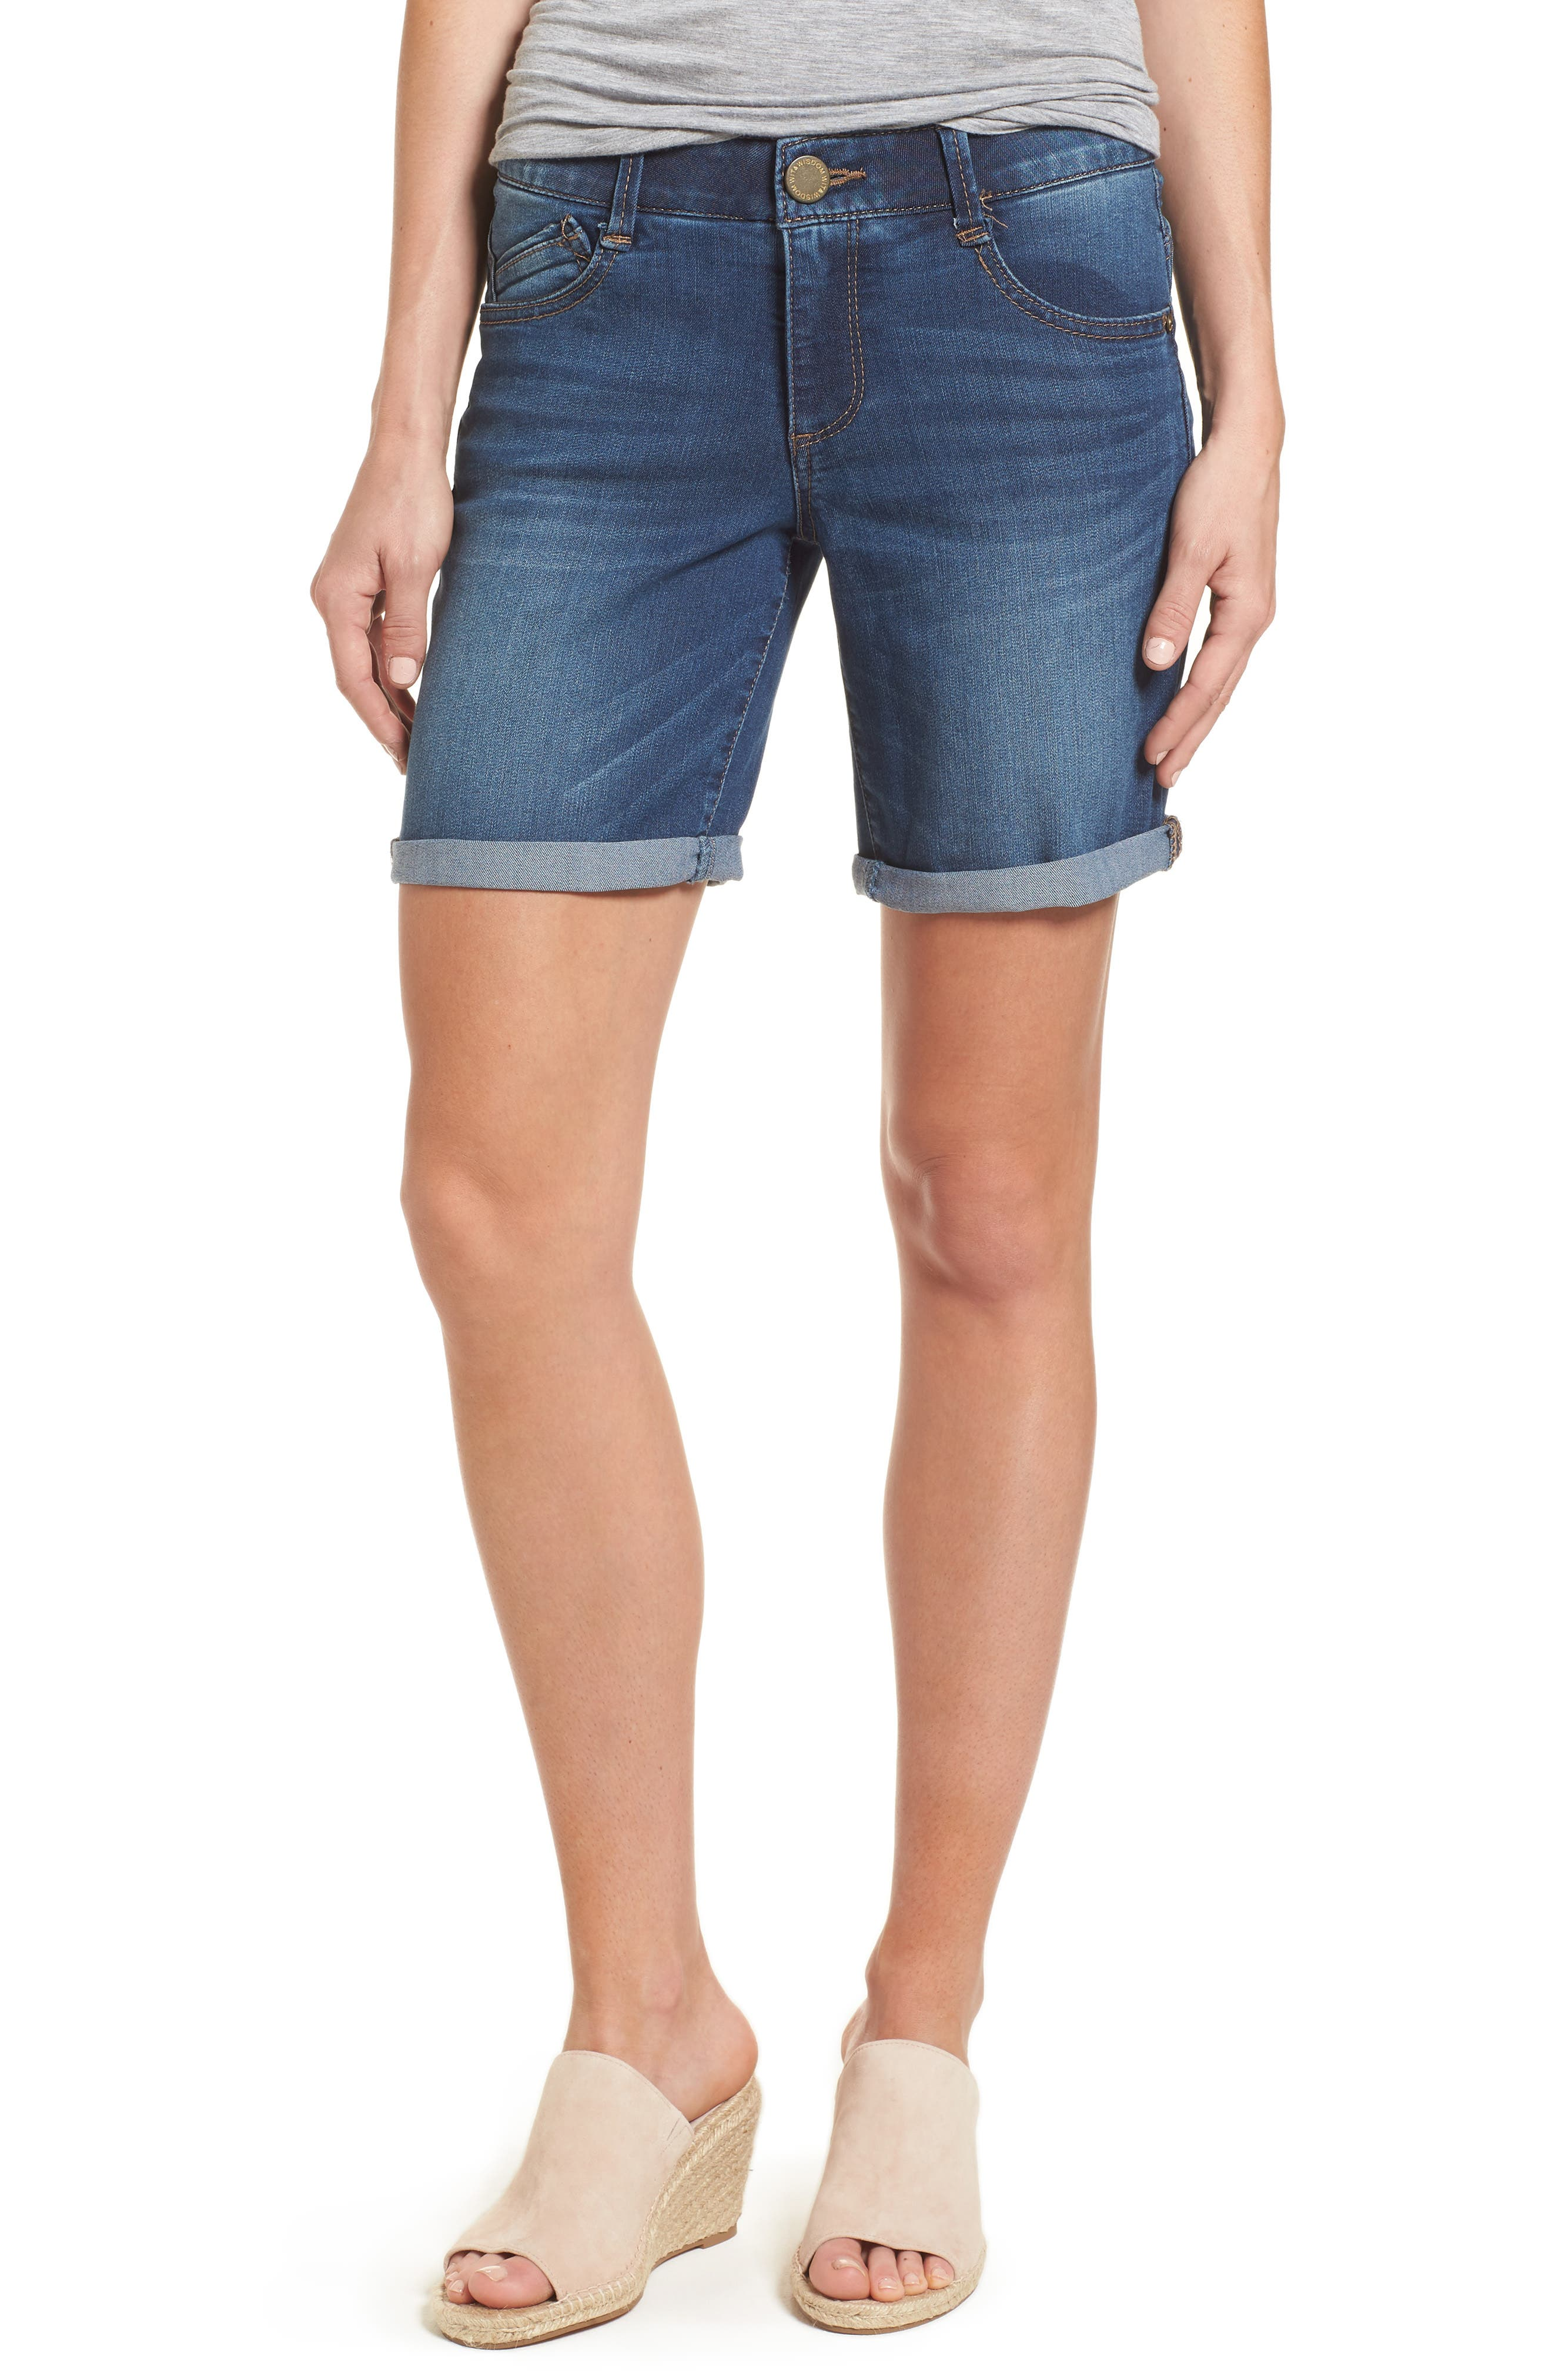 Ab-solution Cuffed Denim Shorts,                         Main,                         color, Blue